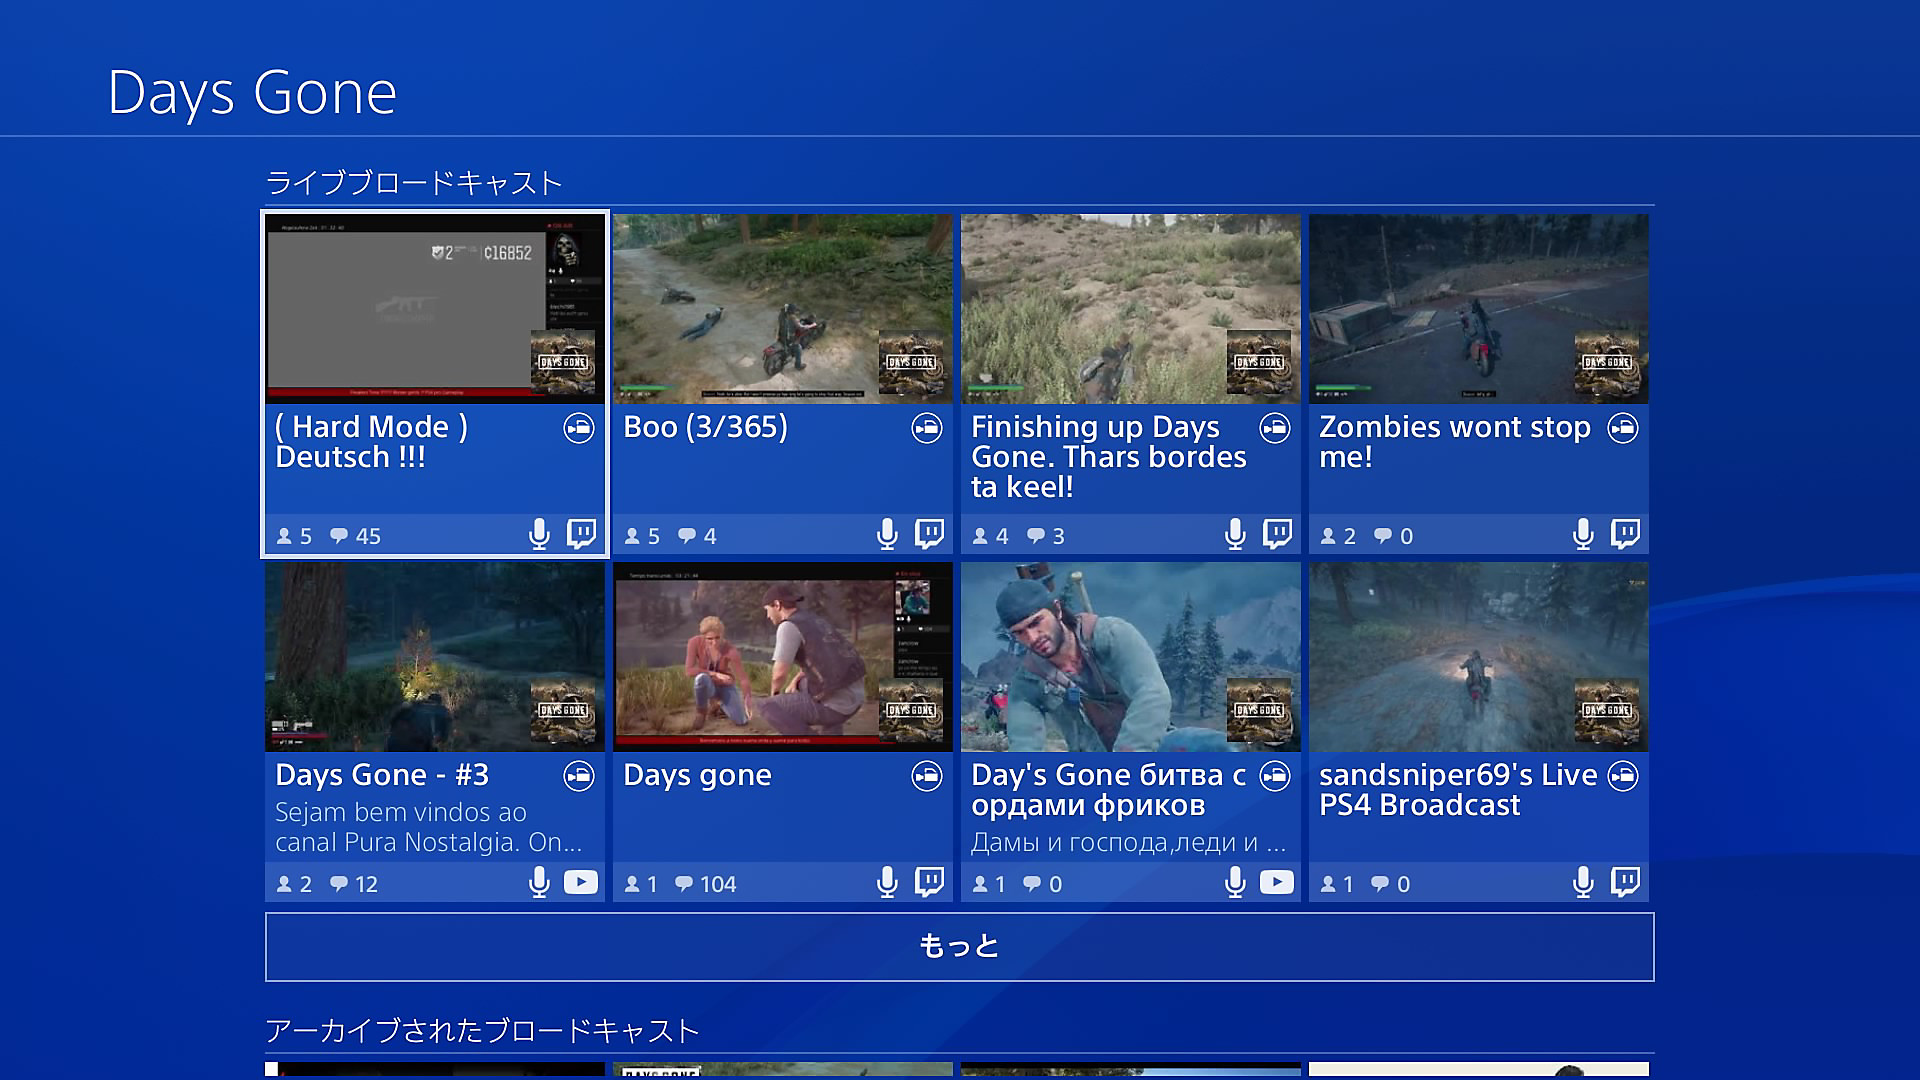 Live from PlayStation画面 - PS4